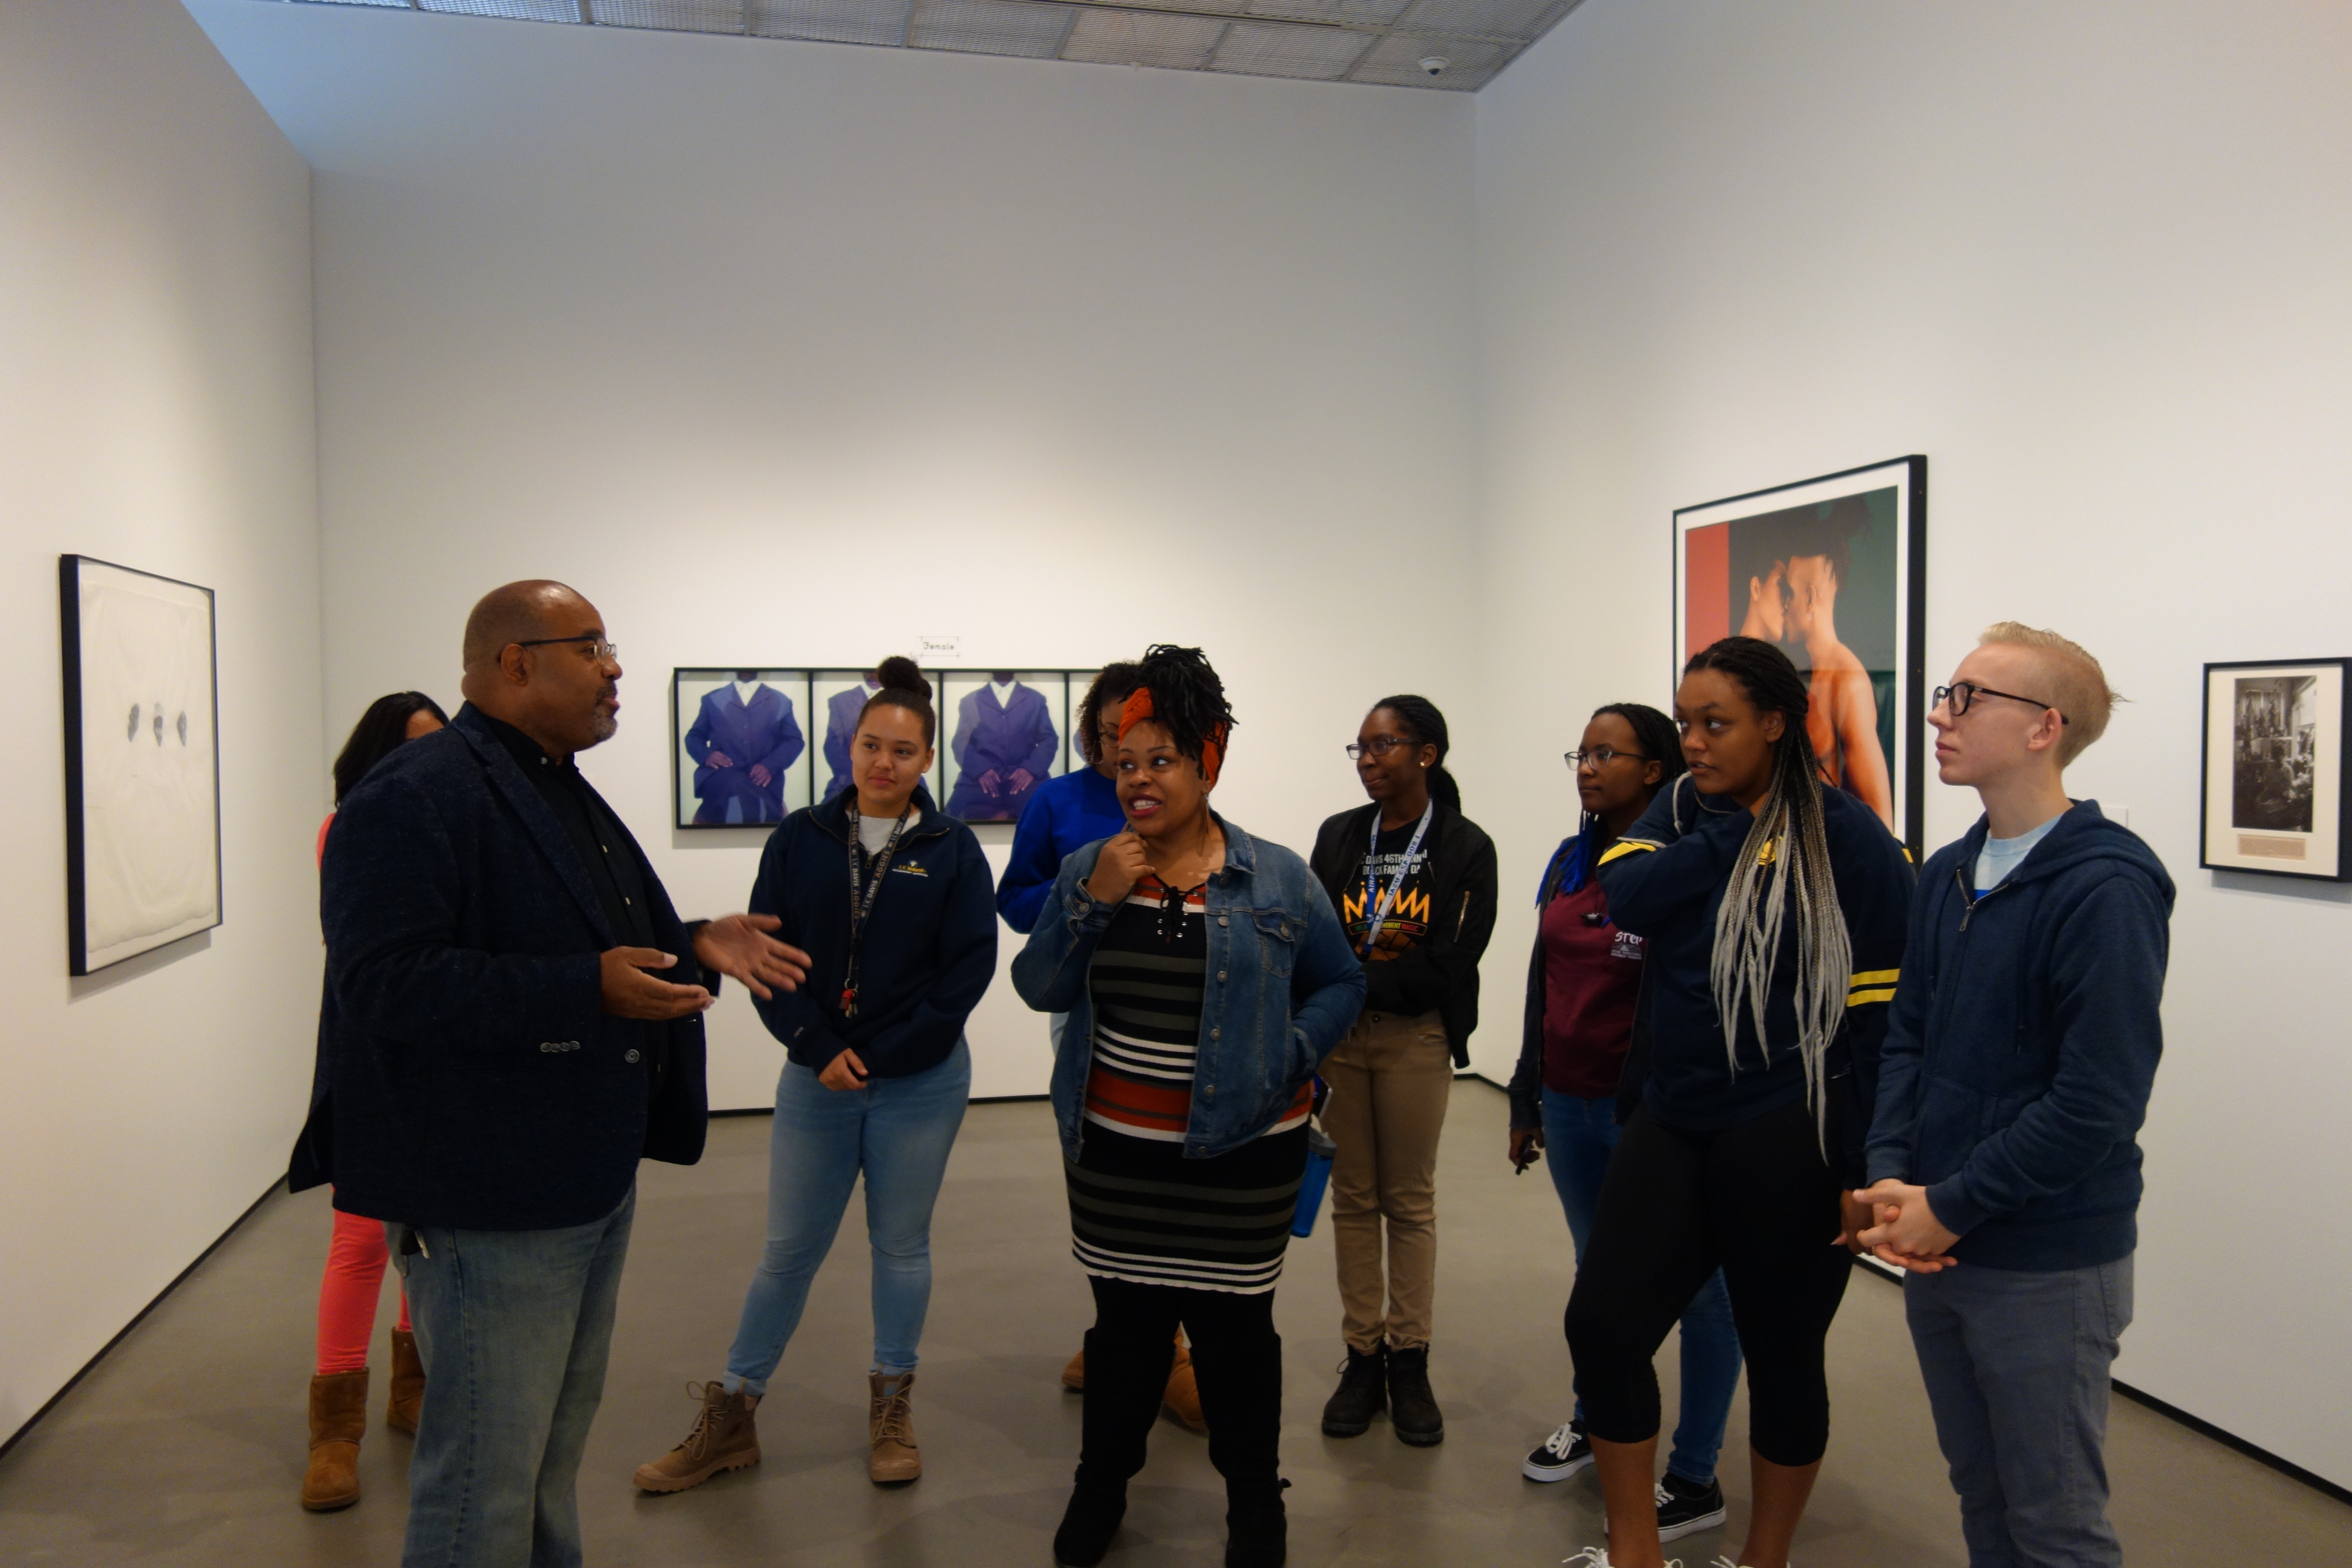 Students learning in the galleries